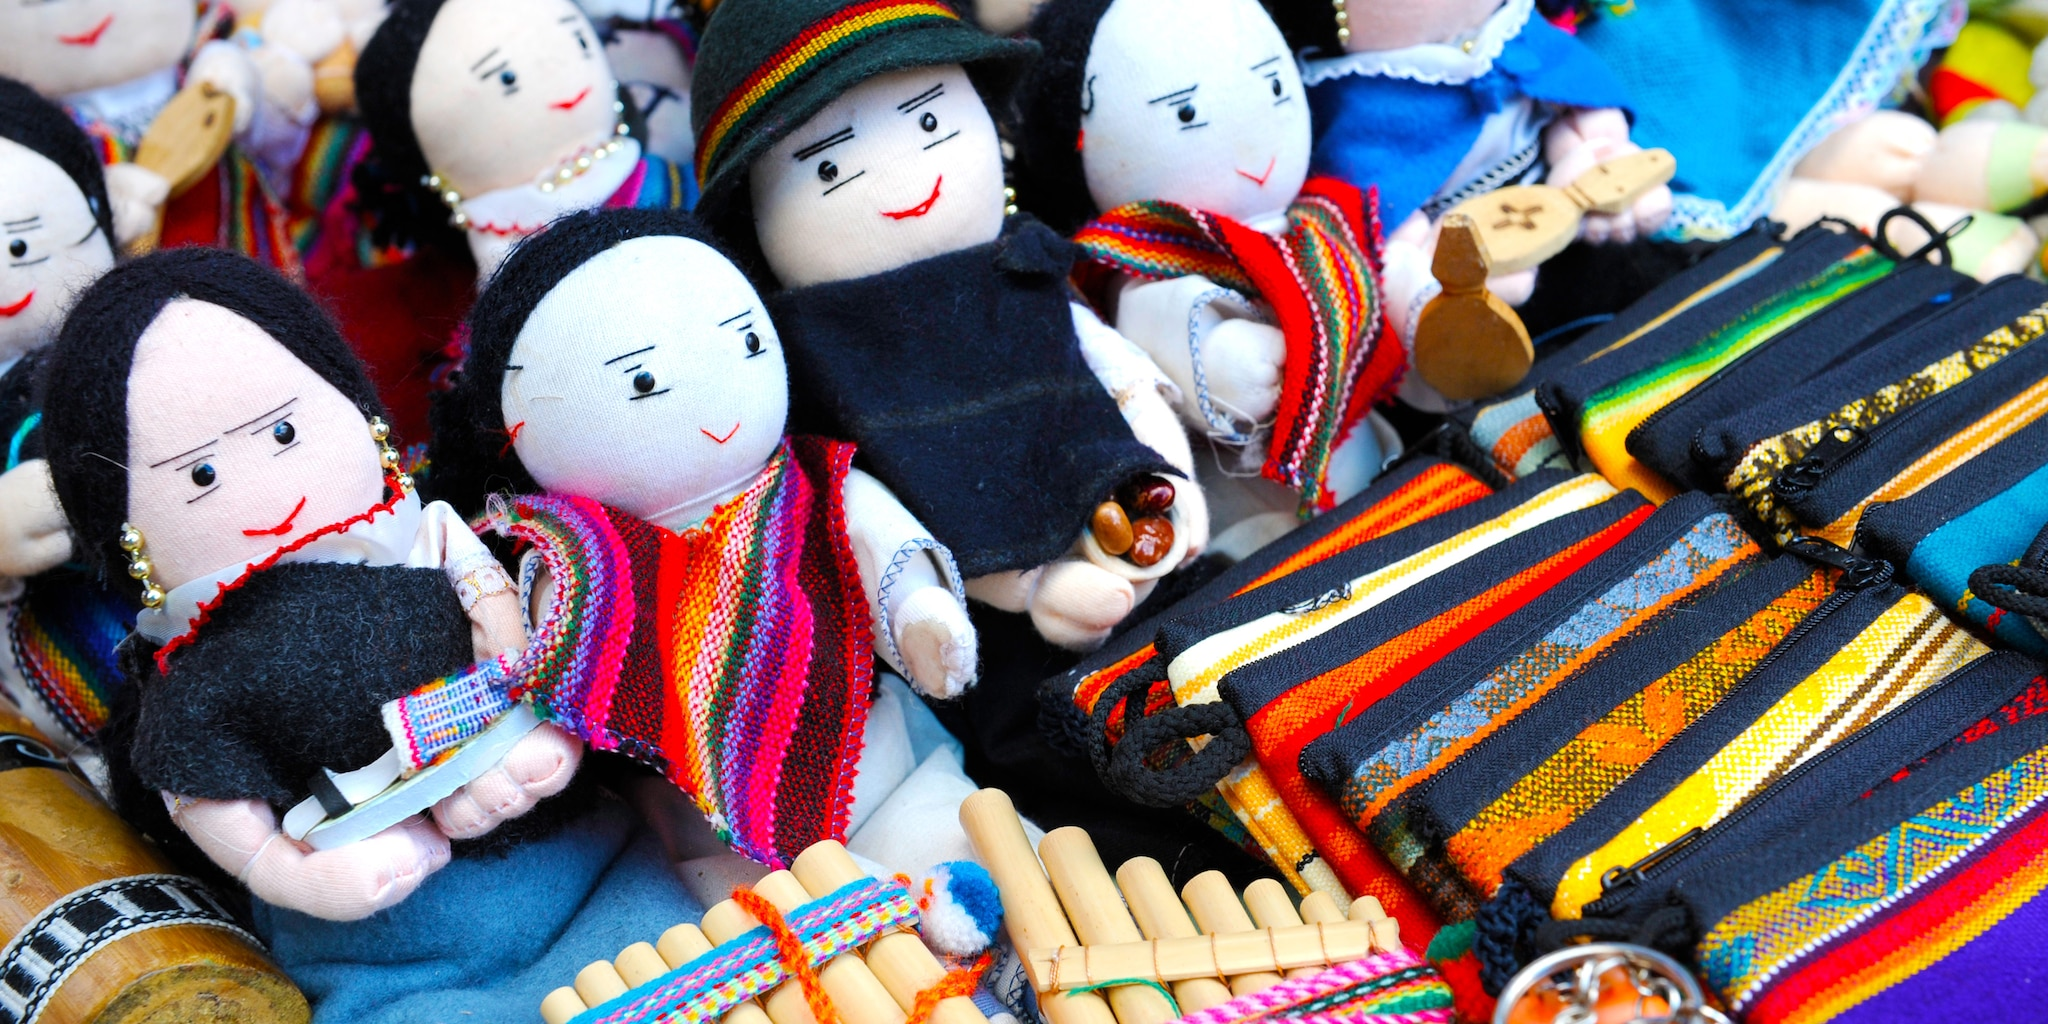 Traditional Ecuadorian dolls , crafts and woven items